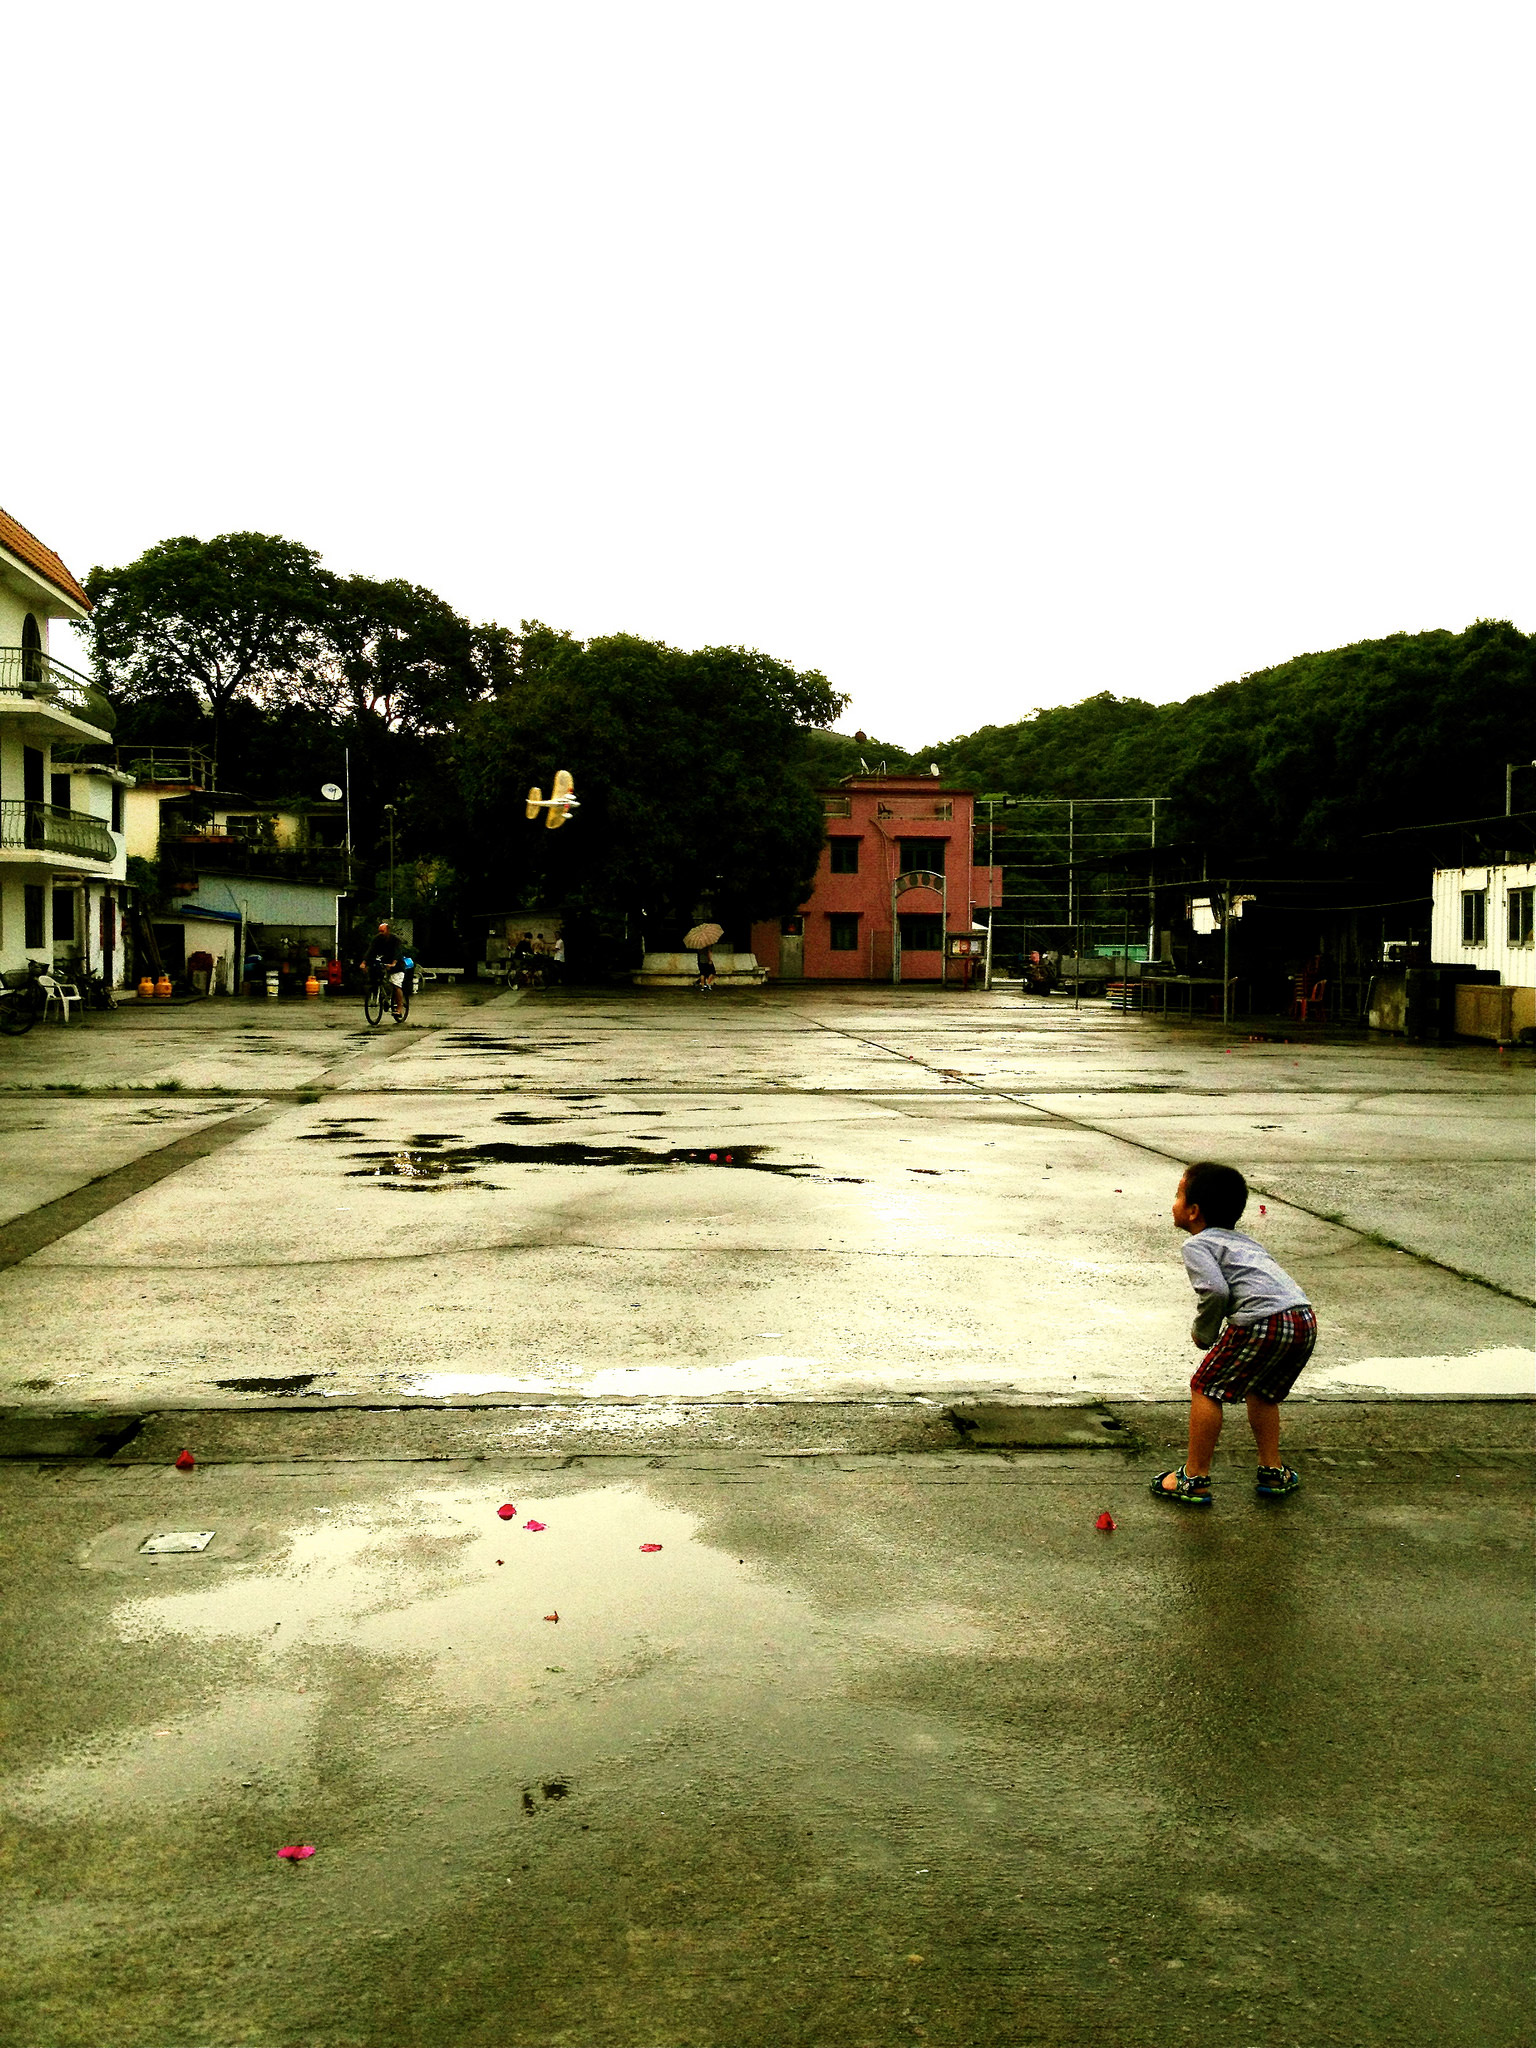 A little kid leans forward in a lot with puddles. A man rides a bike in the background. The lot is surrounded by houses and apartments.